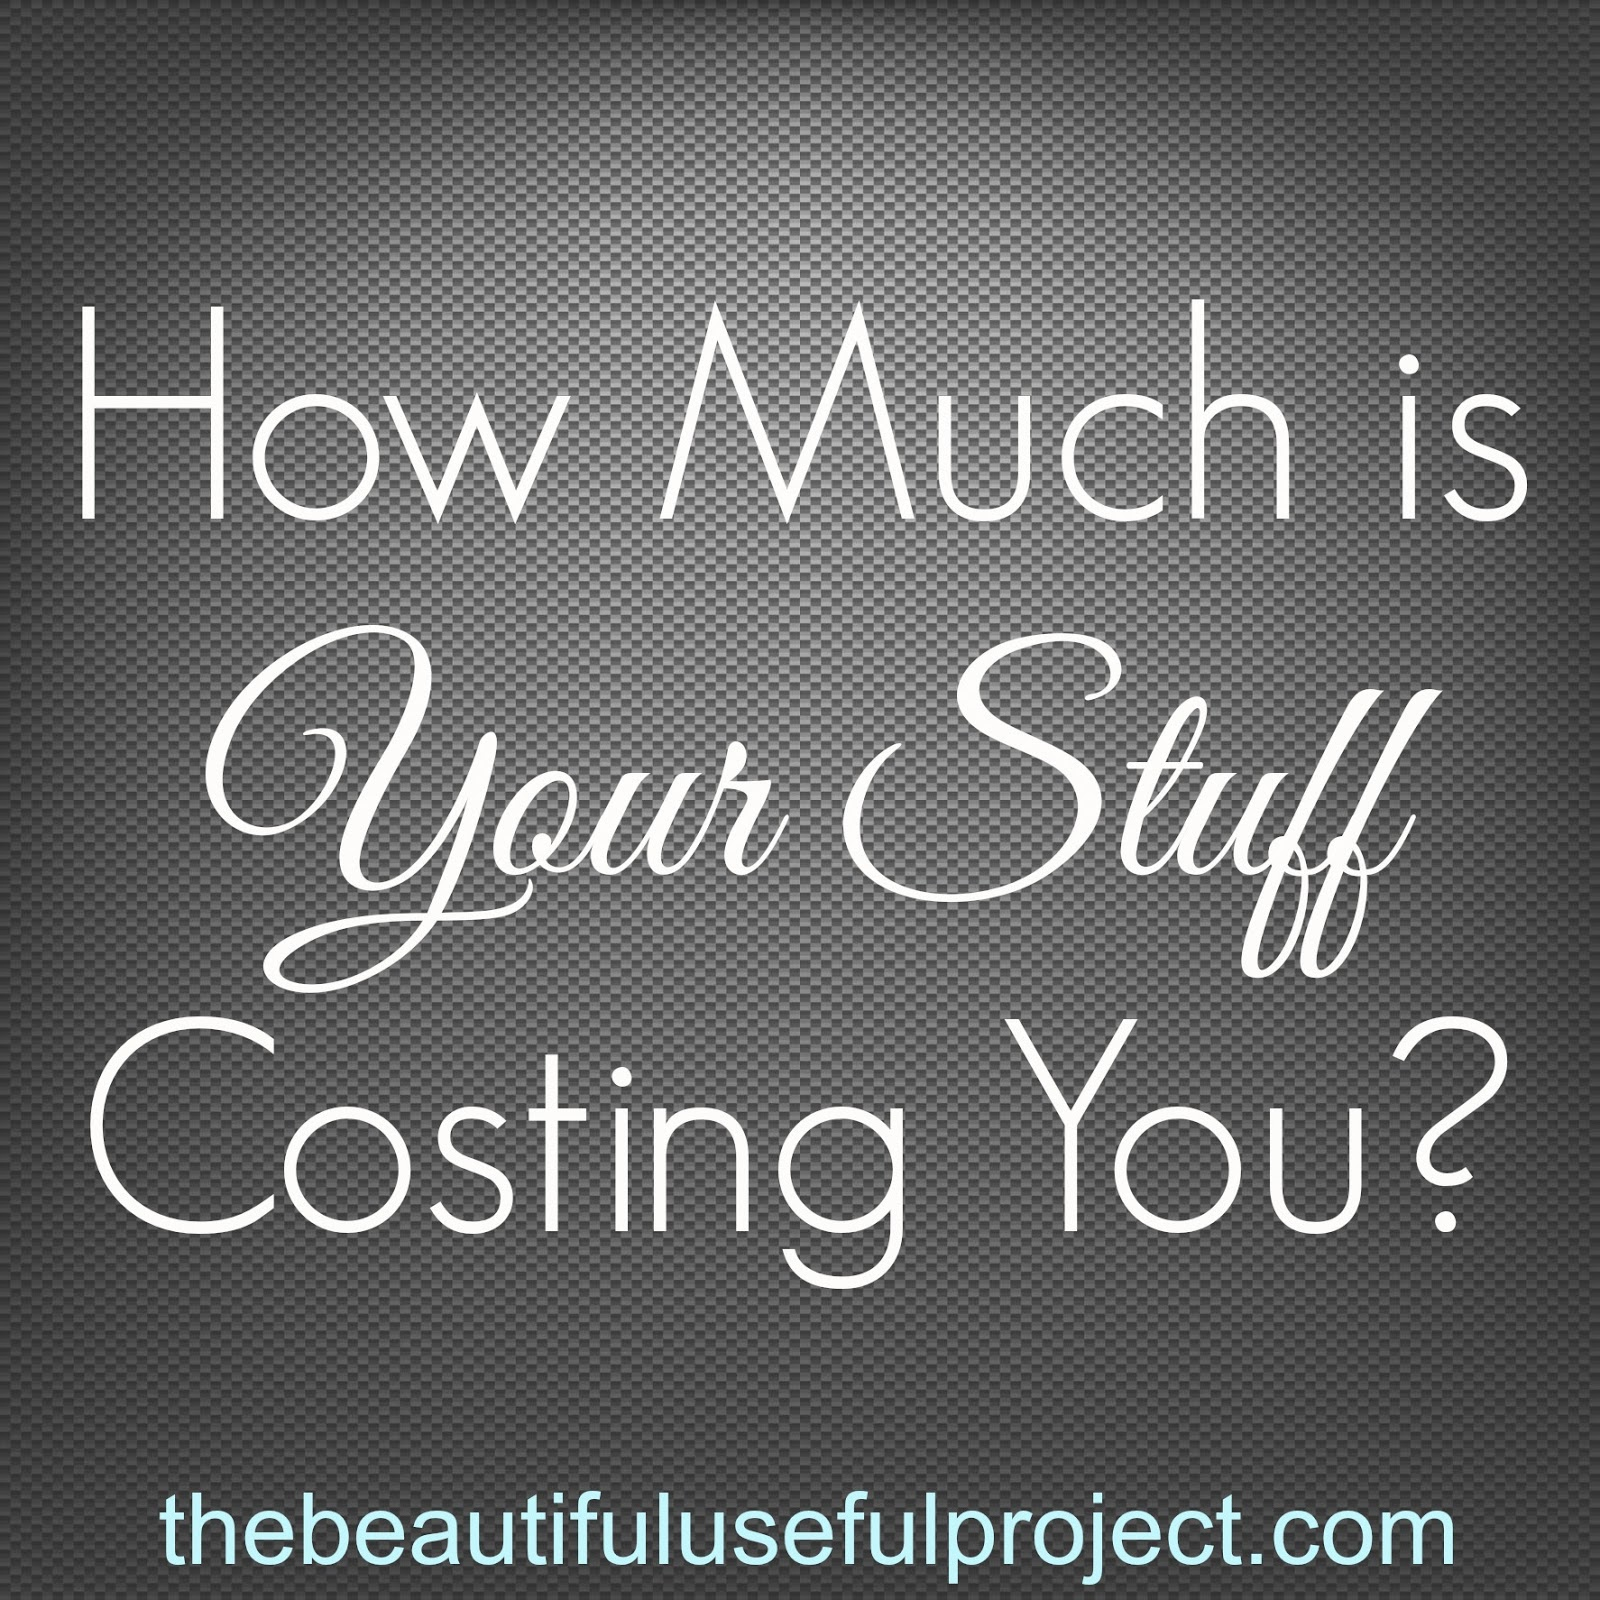 How Much Is Your Clutter Costing You? Declutter. Save Money.